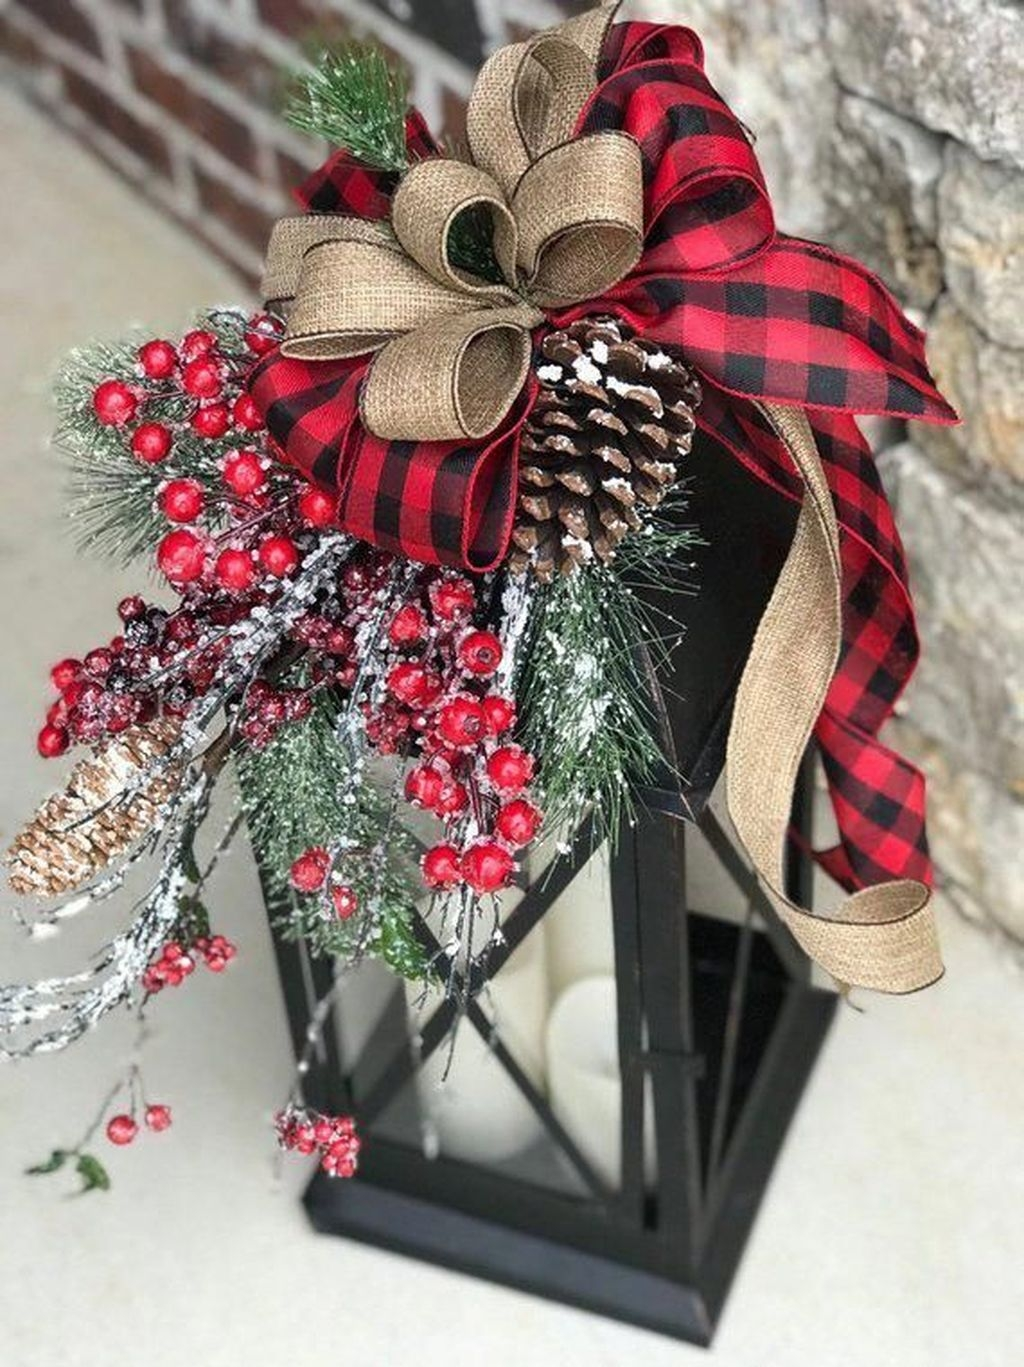 Awesome Outdoor Winter Decoration Ideas39